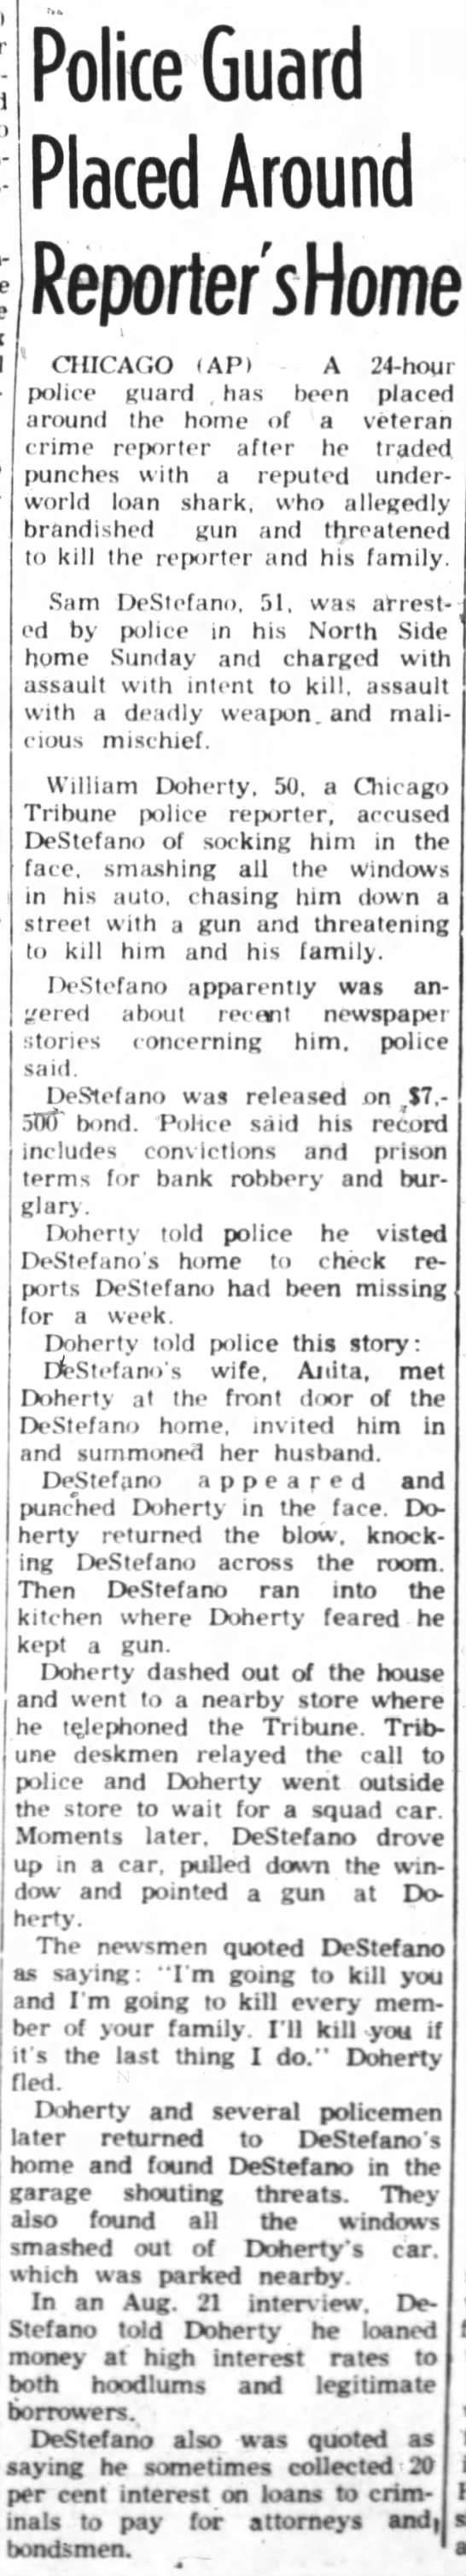 Sam DeStefano arrested after fight with reporter, threatens his family (1961) -